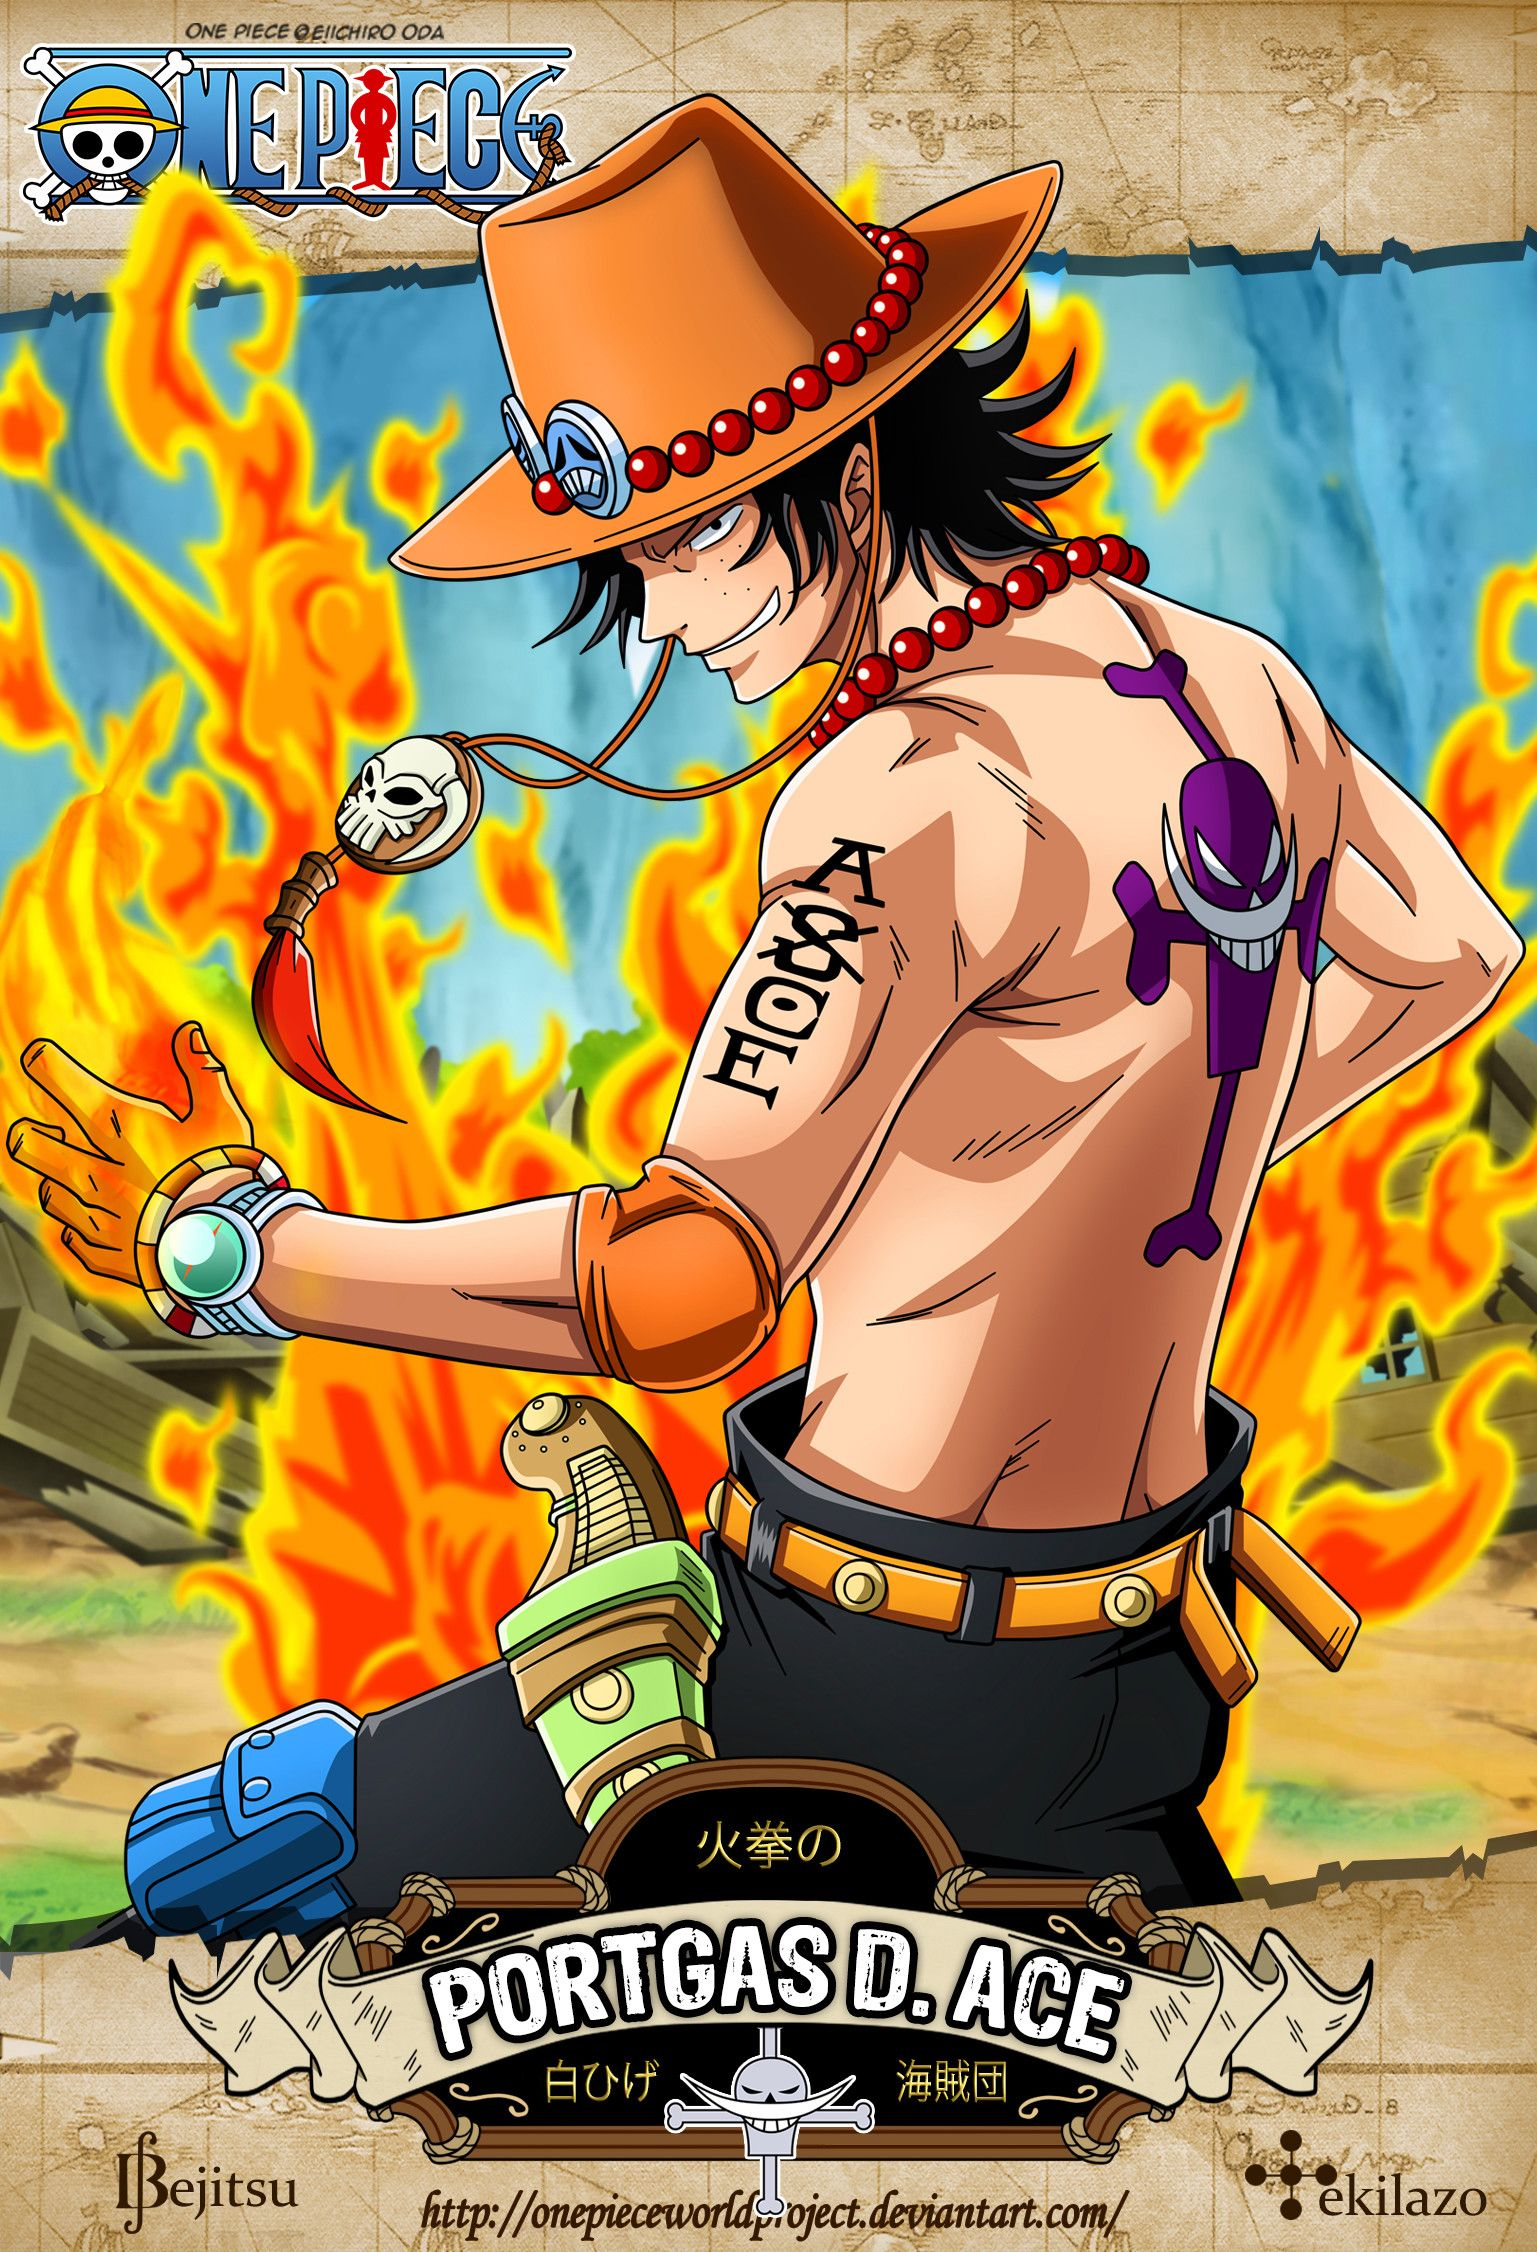 One Piece Hd Wallpapers For Android One Piece Wallpaper Wanted Wallpapertag One Piece Wallpapers Hd New Tab The In 2020 One Piece Ace One Piece Manga One Piece Anime